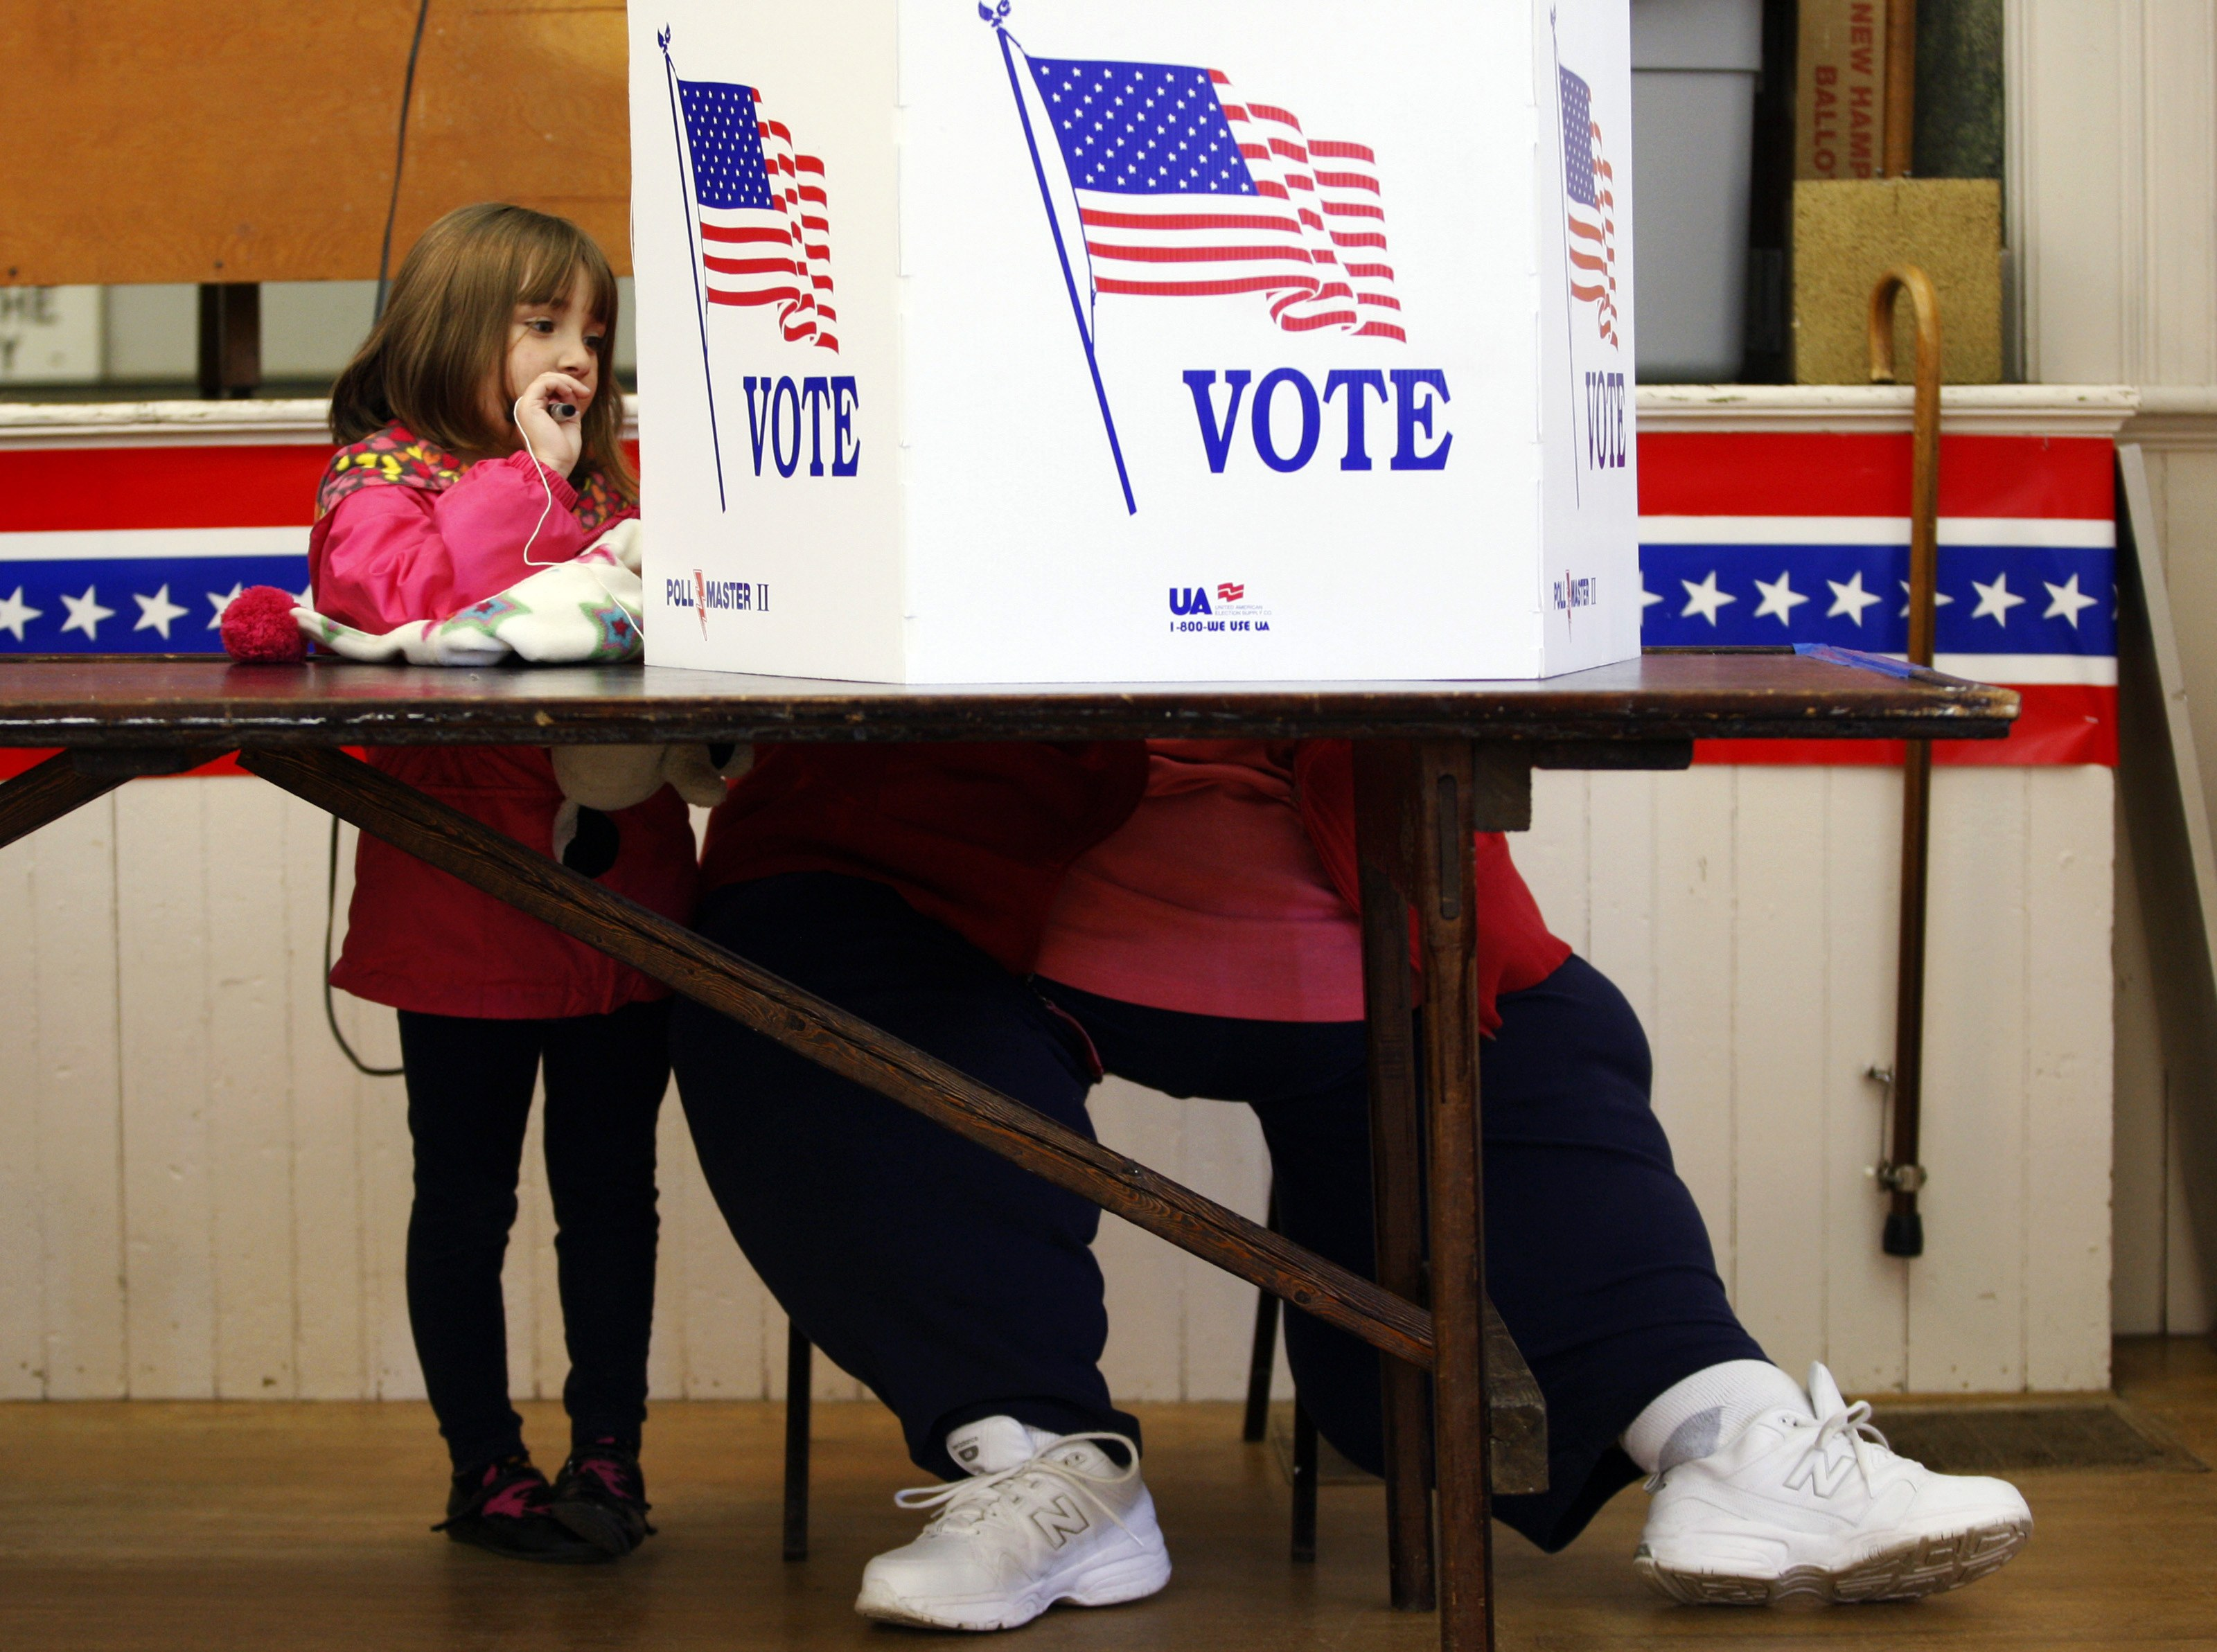 A girl watches as her grandmother votes at the old Town Hall during the U.S. presidential election in Bristol